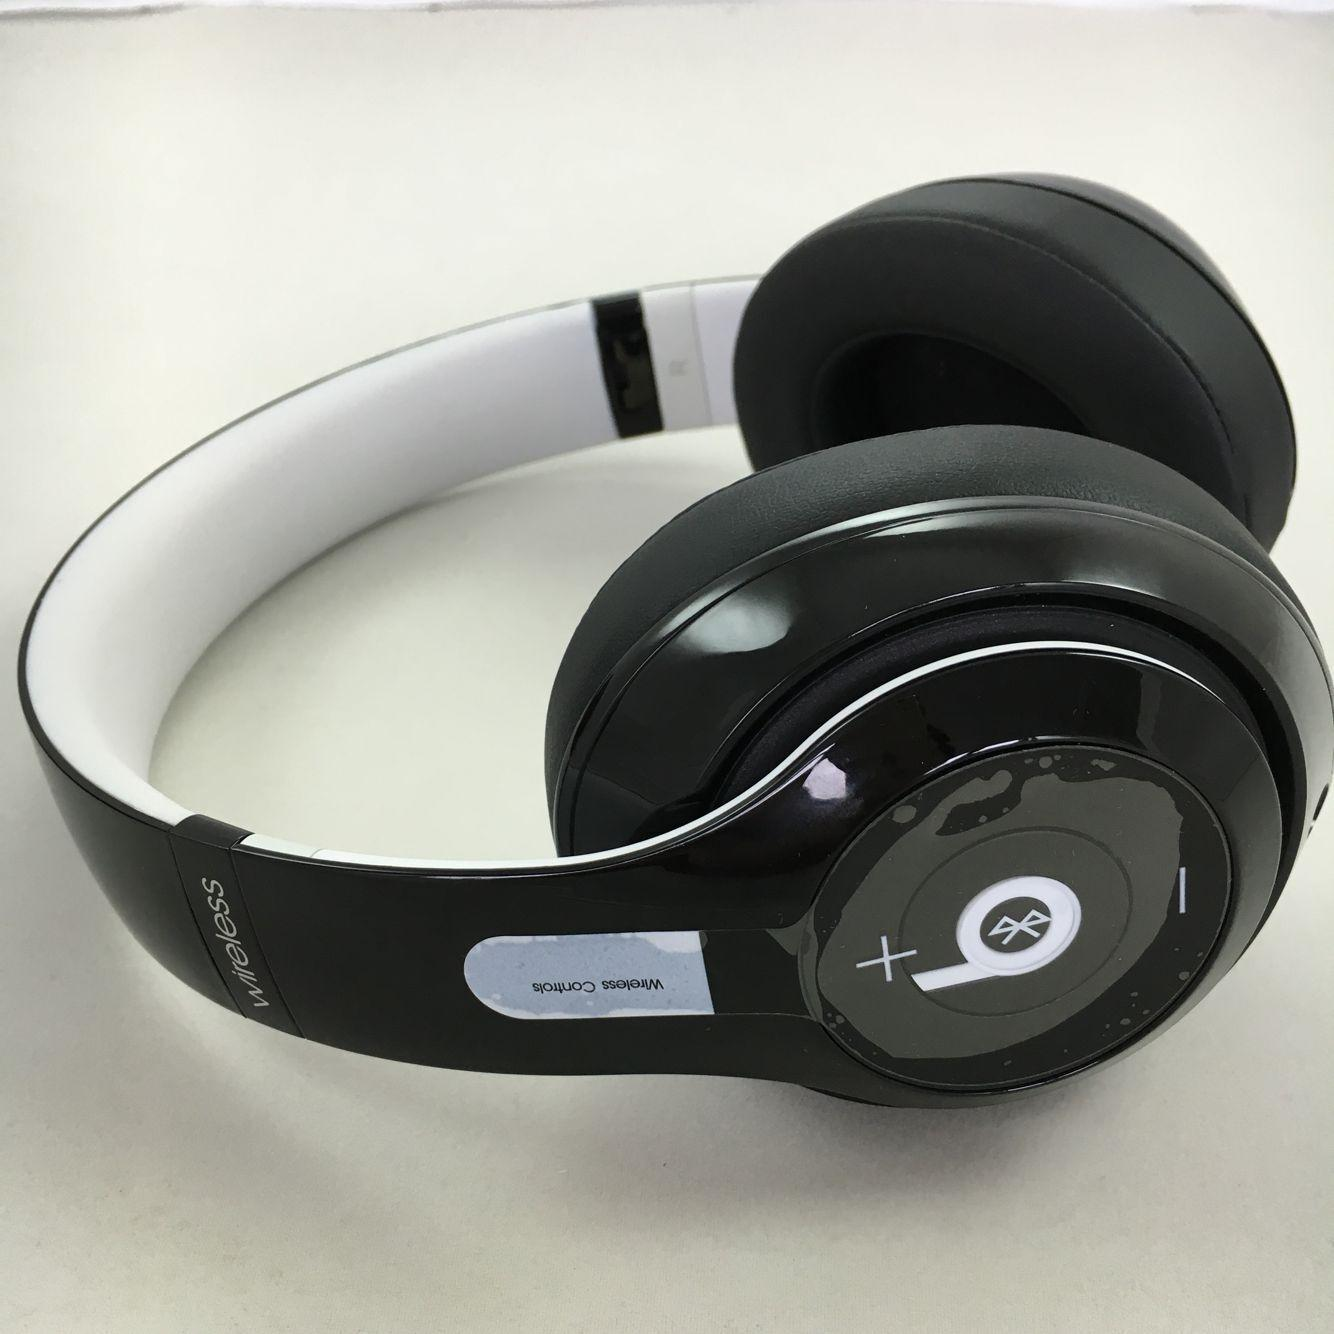 2018 Used Beats By Dre Straight Outta Compton Studio20 Headphone Wireless Bluetooth Beat Drdre Headphones Headsets With Serial Codes Great Bass